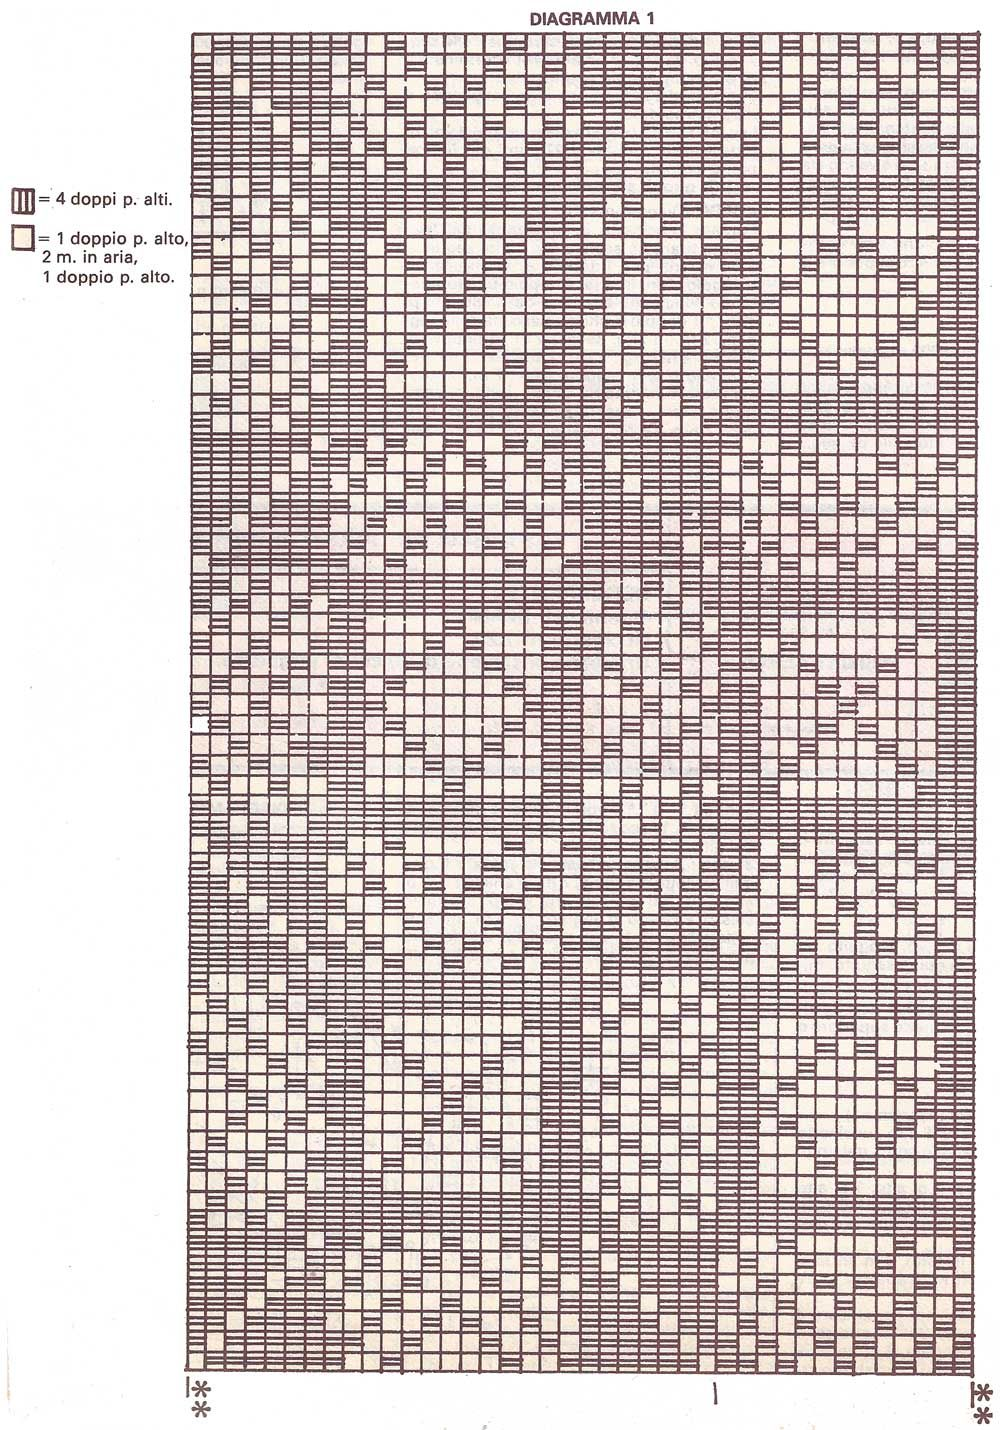 Striscia Da Tavolo Diagramma Crochet Everything Crochet Doily